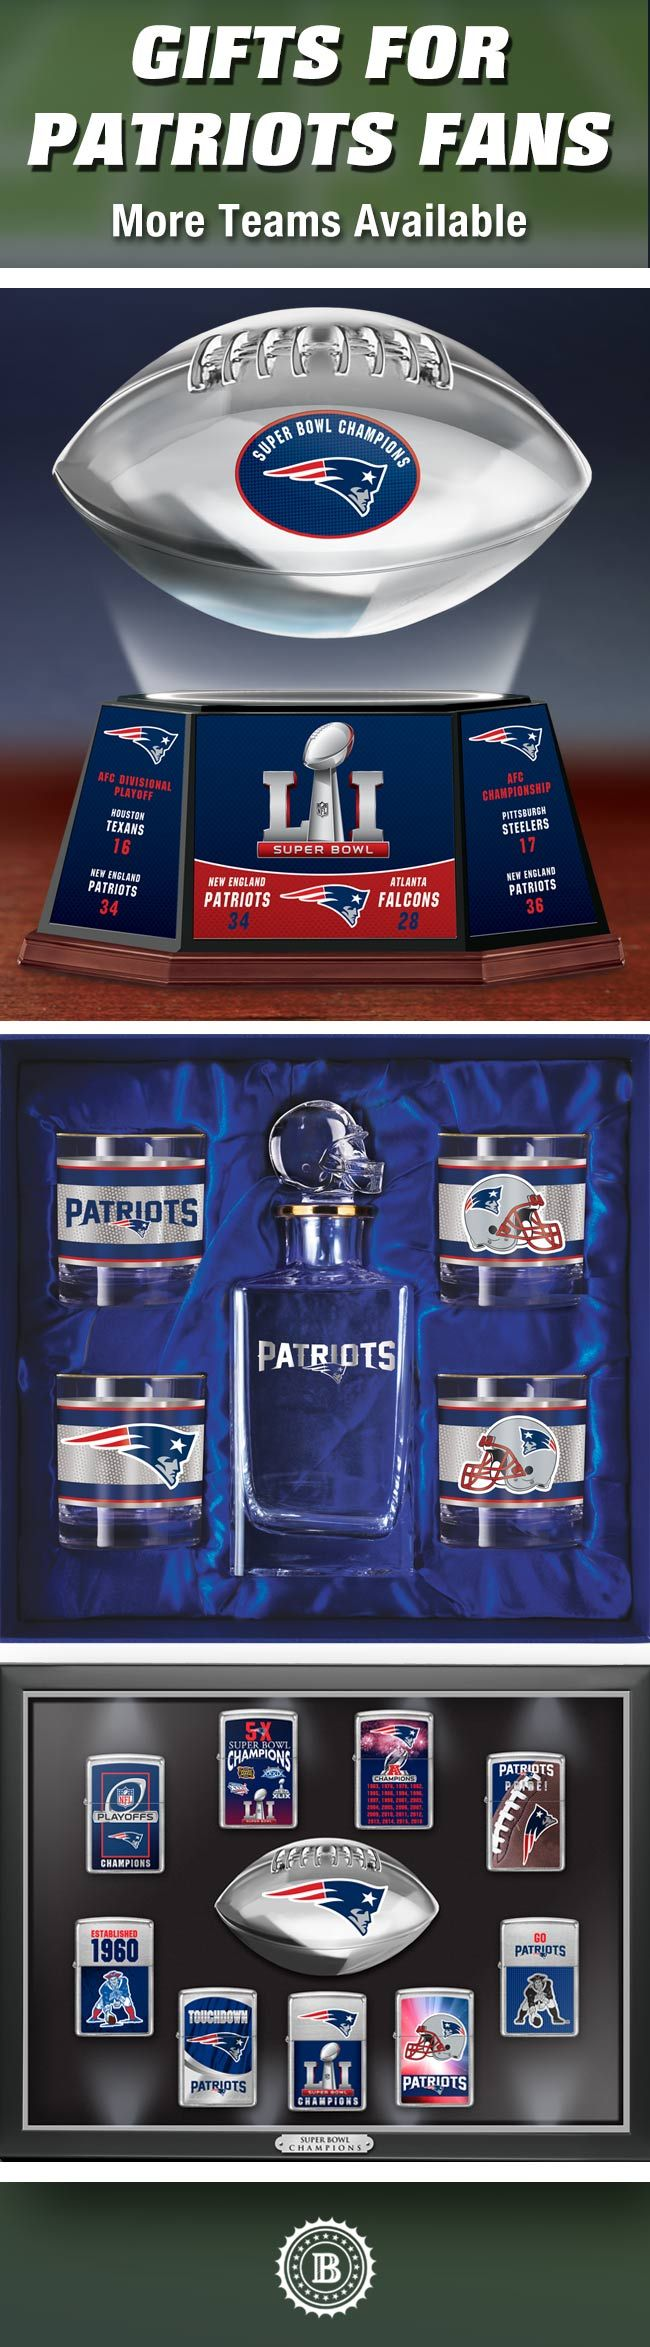 Find winning gifts for New England Patriots fans when you shop with us! Our exciting selection of officially-licensed Patriots collectibles, home decor, jewelry and more showcases the best of the NFL, so you are sure to score the perfect tribute.